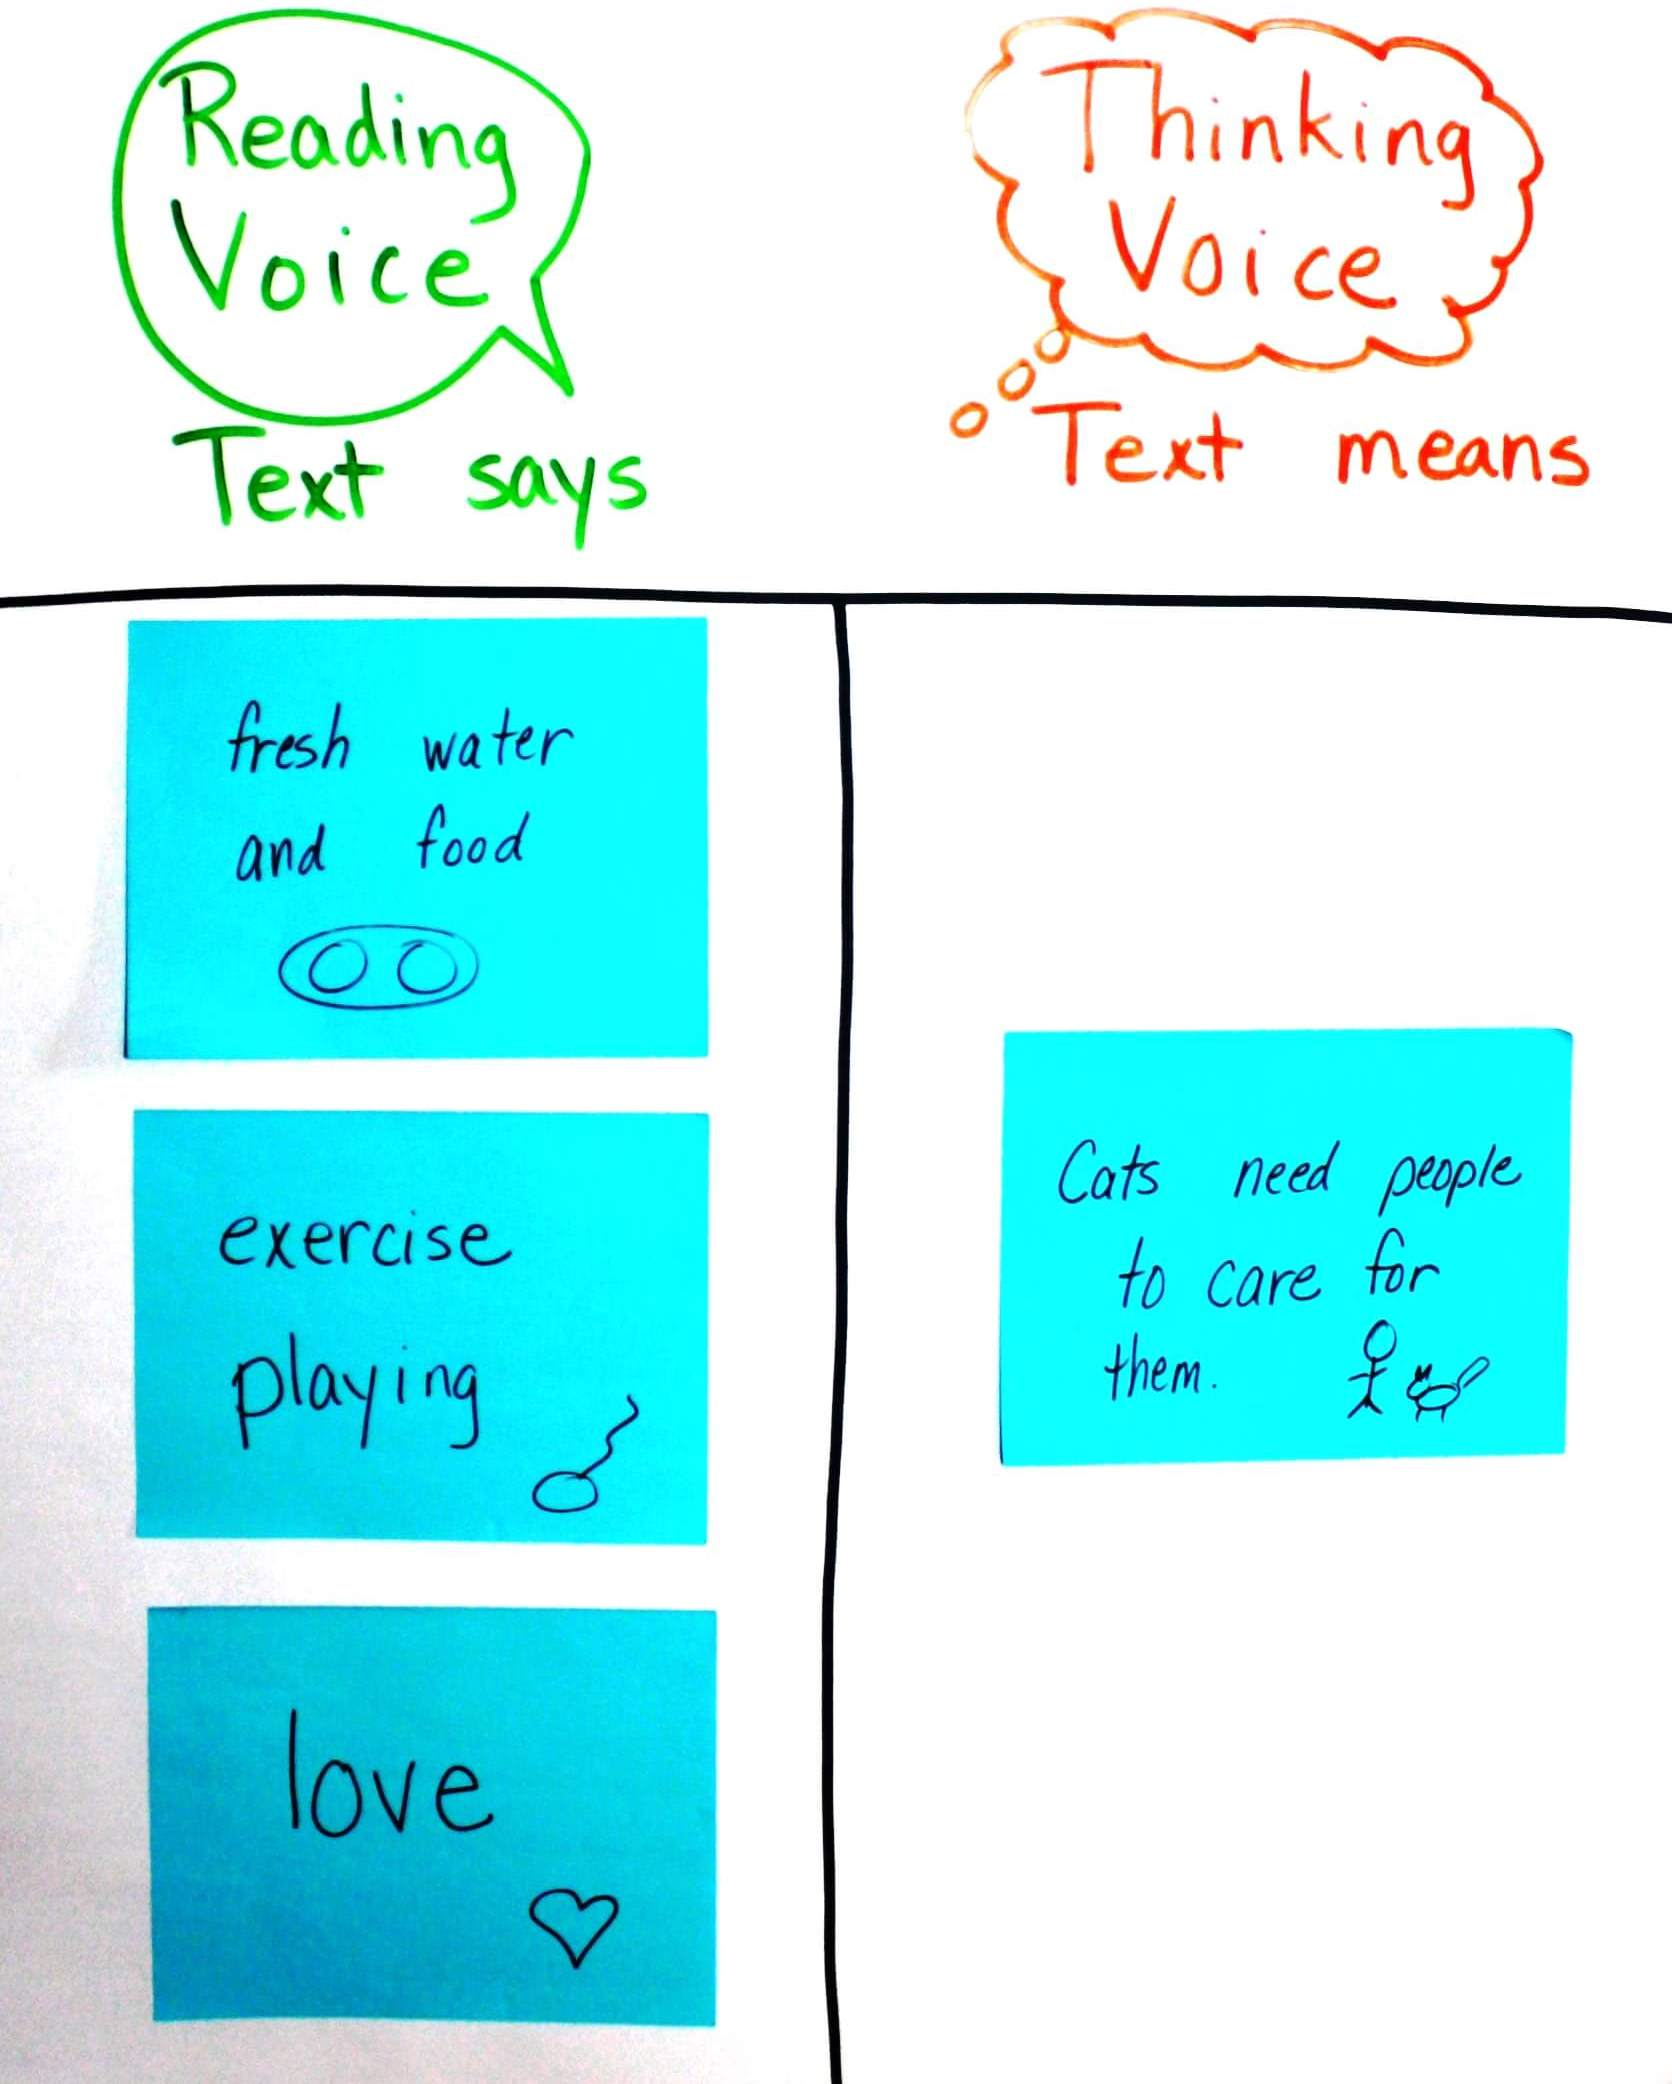 Annotation Sticky Notes: Cat Care Example